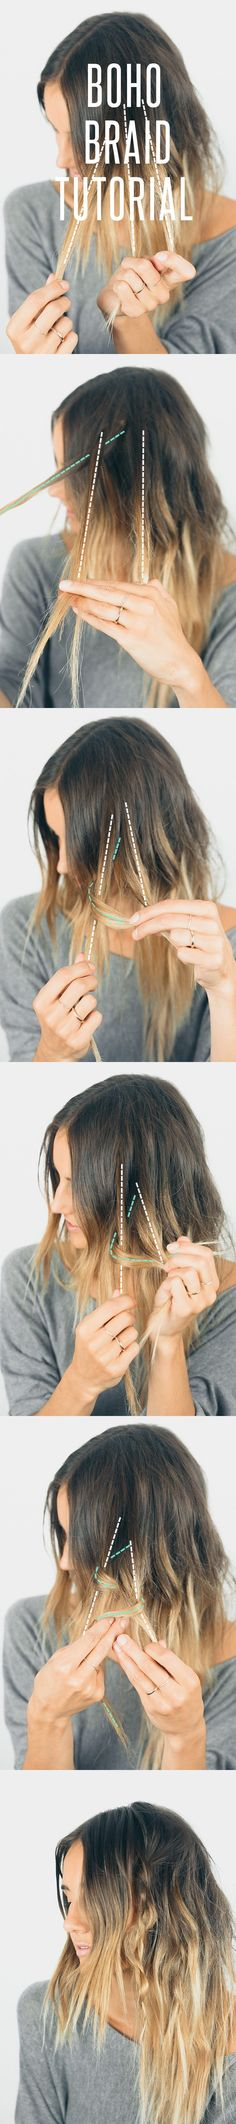 Boho Braid Tutorial//